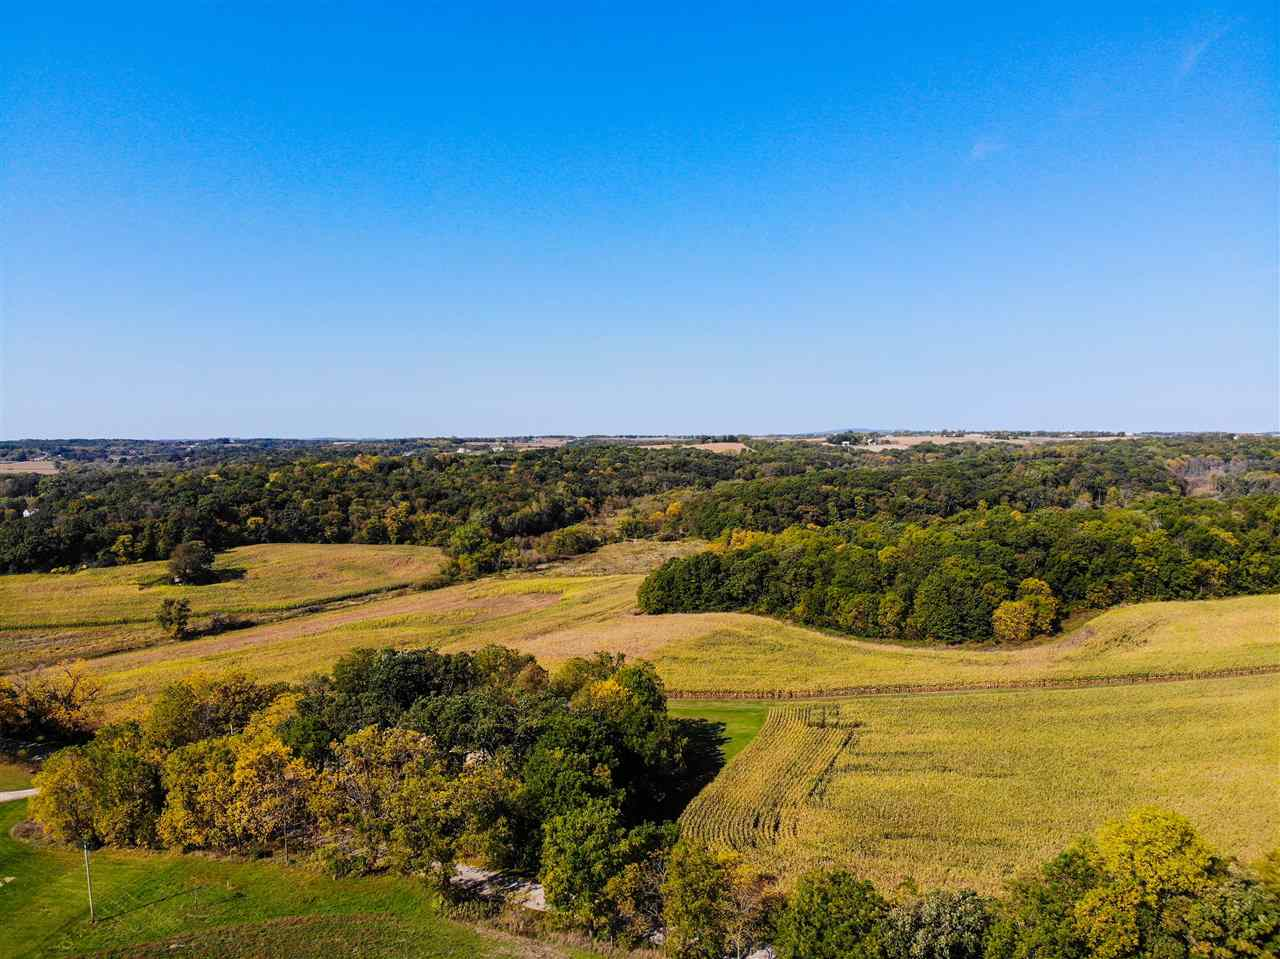 Lot 12 Twin Rock Rd, Verona, Wisconsin 53593, ,Lots And Land,For Sale,Lot 12 Twin Rock Rd,1902618